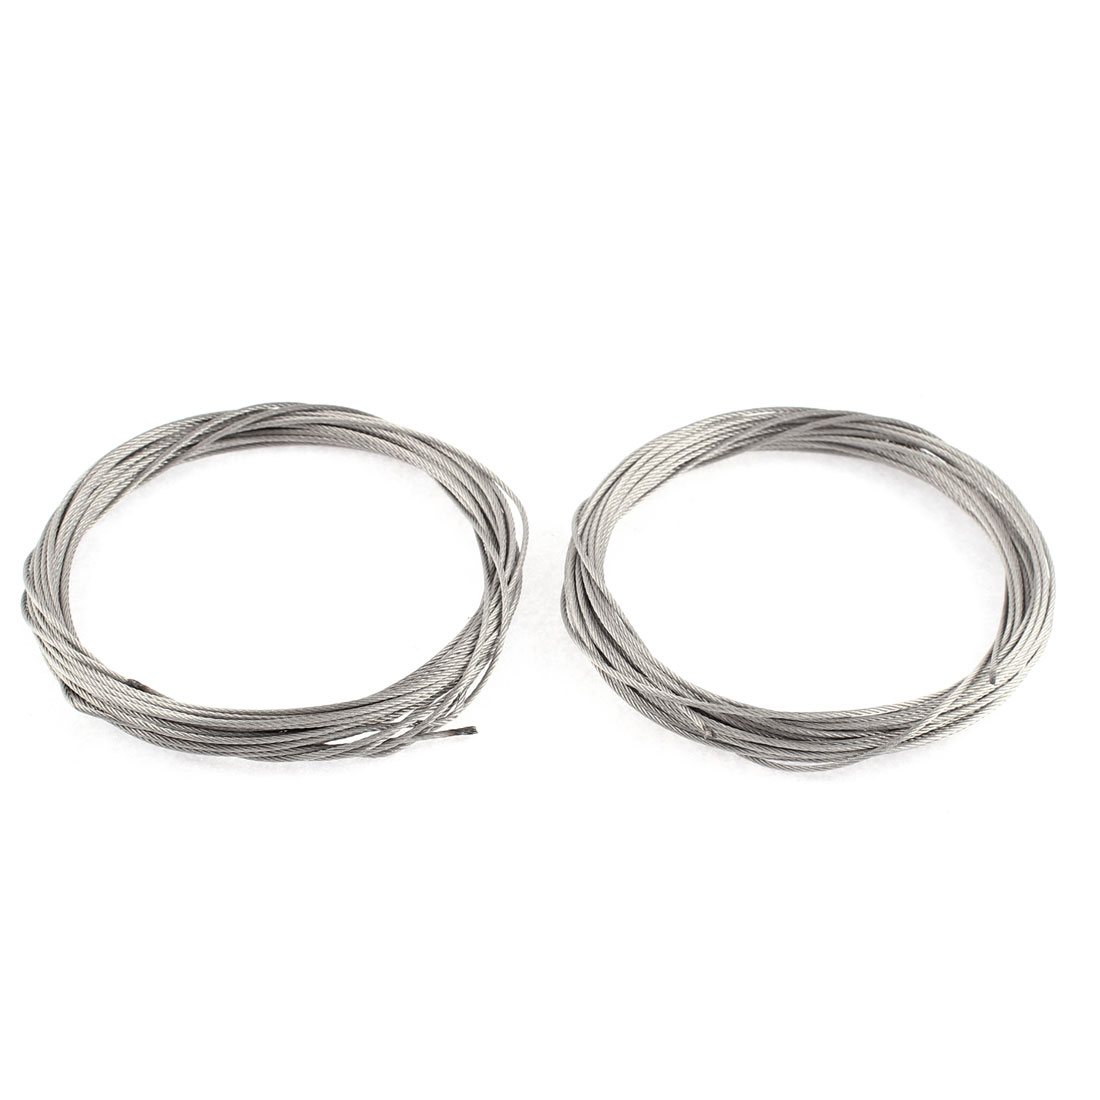 2 Pcs Laundry Clothes Washing Drying Steel Hanging Rope Line 7M 23Ft